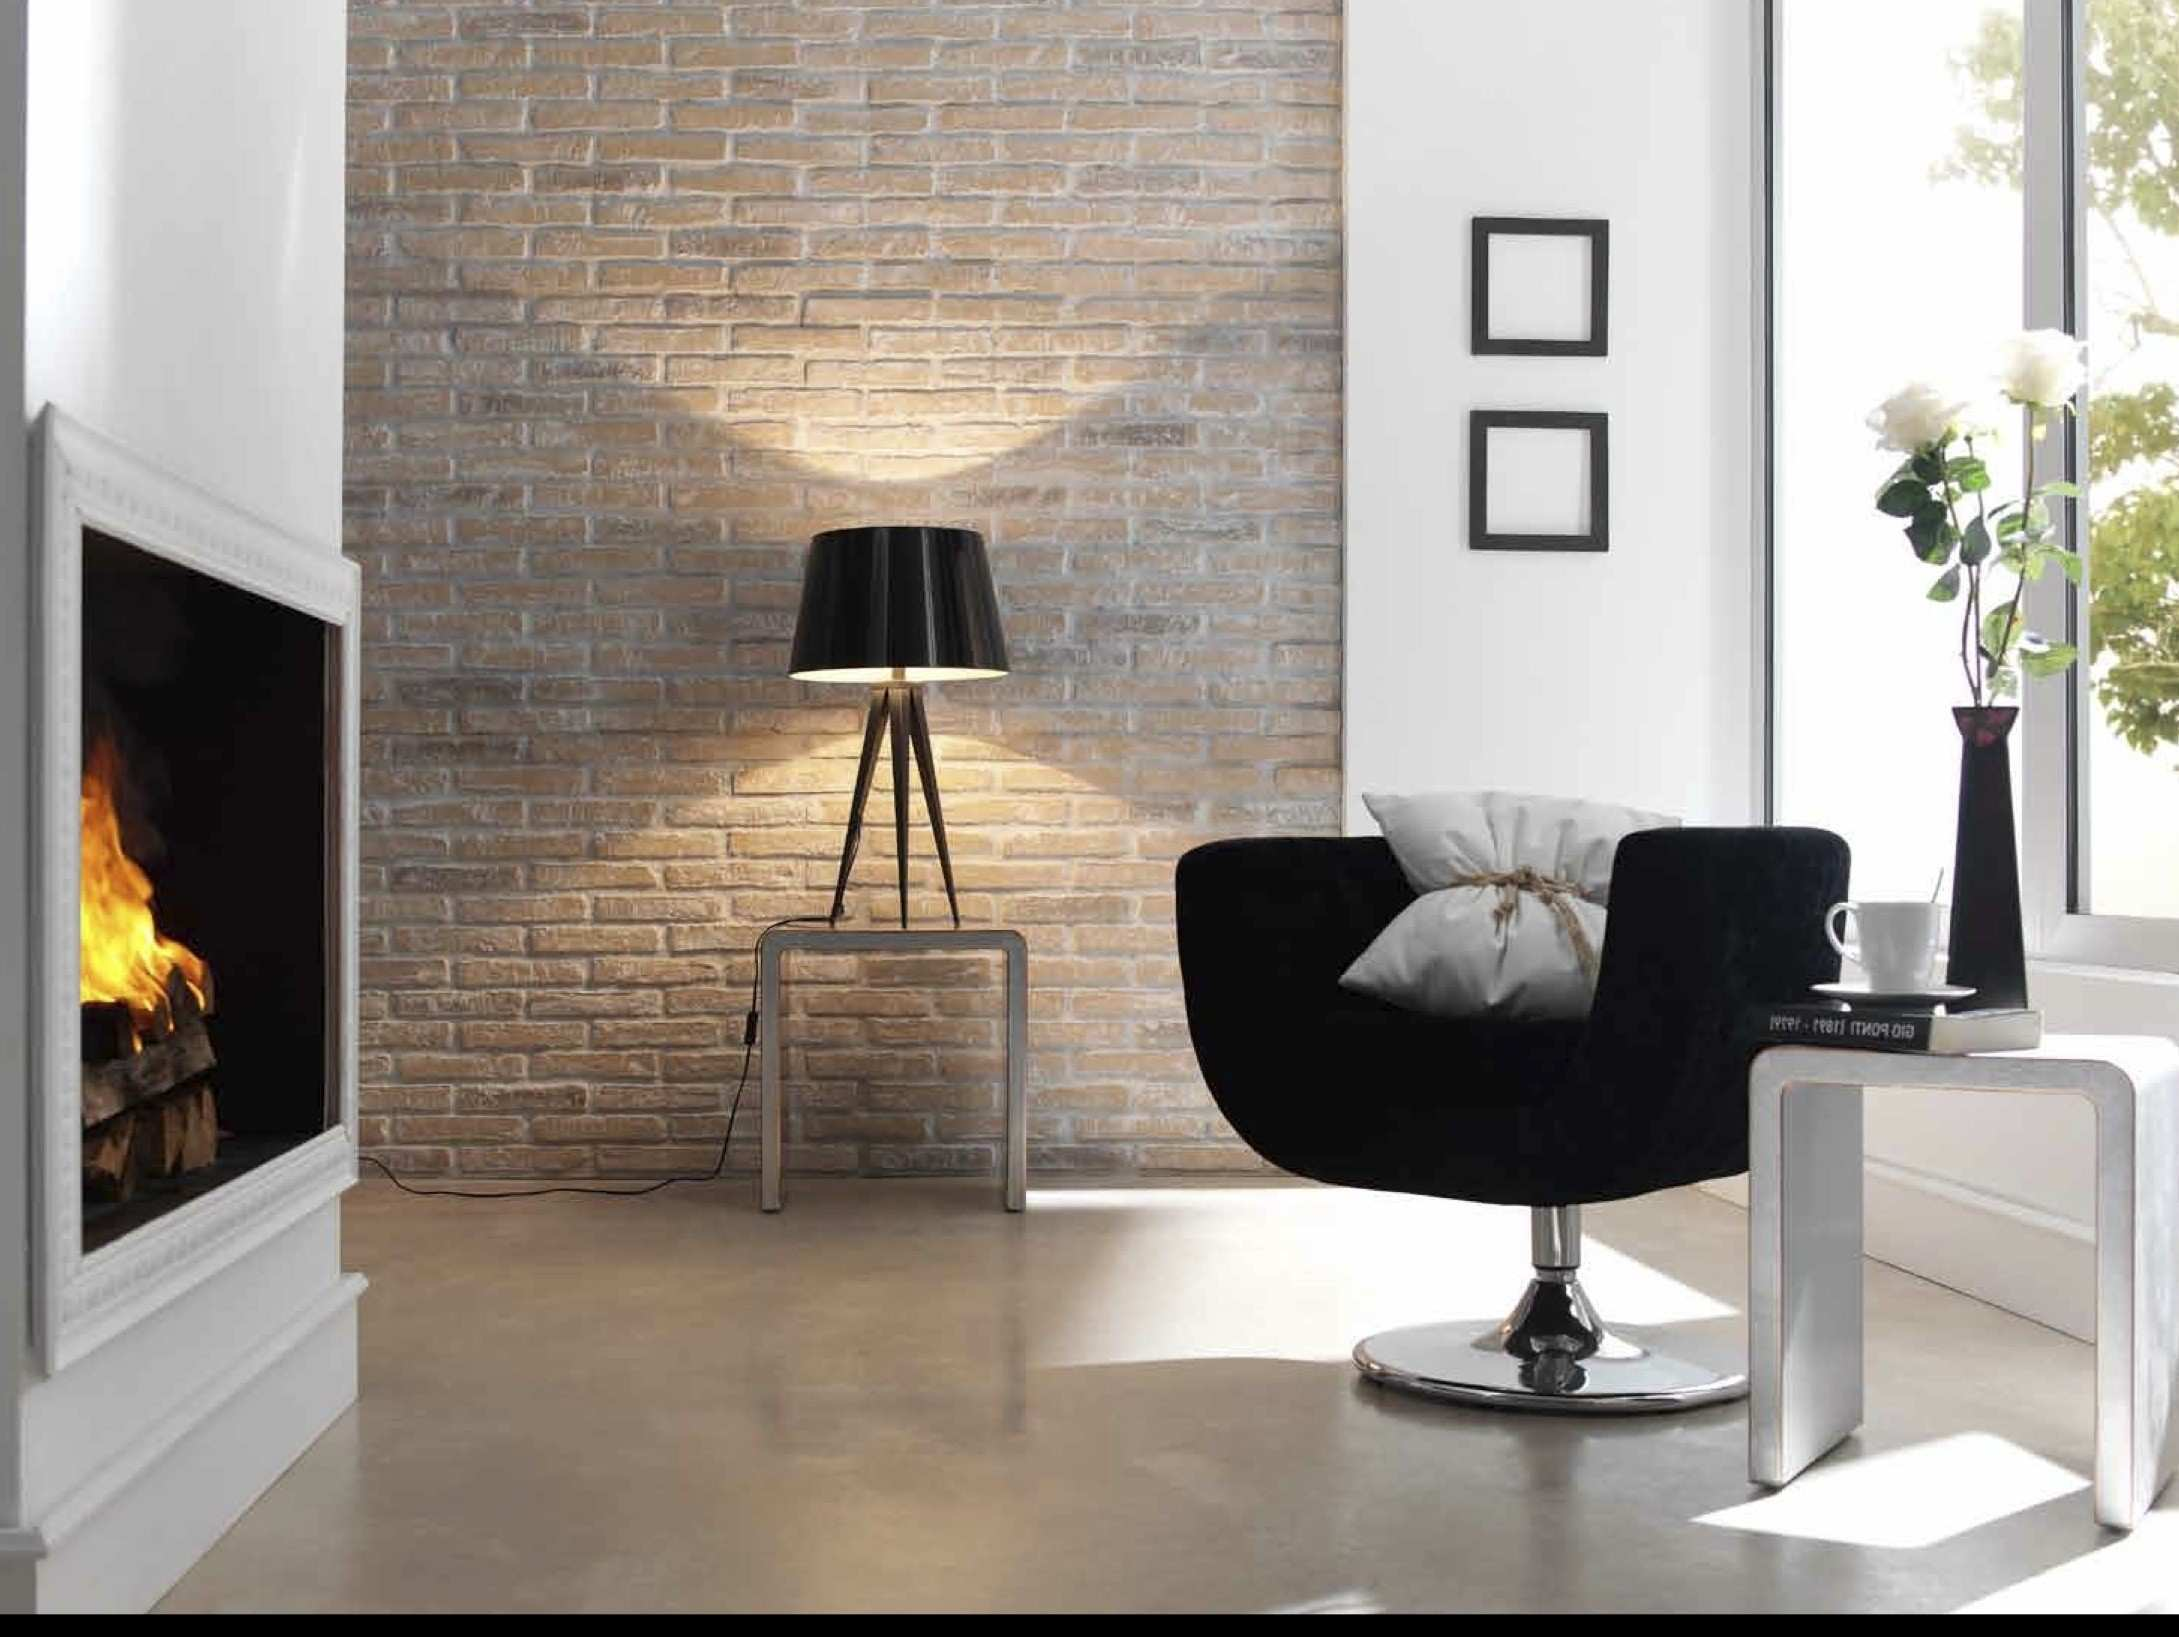 furniture Brick Wall Decoration Ideas White Wallpaper Bedroom